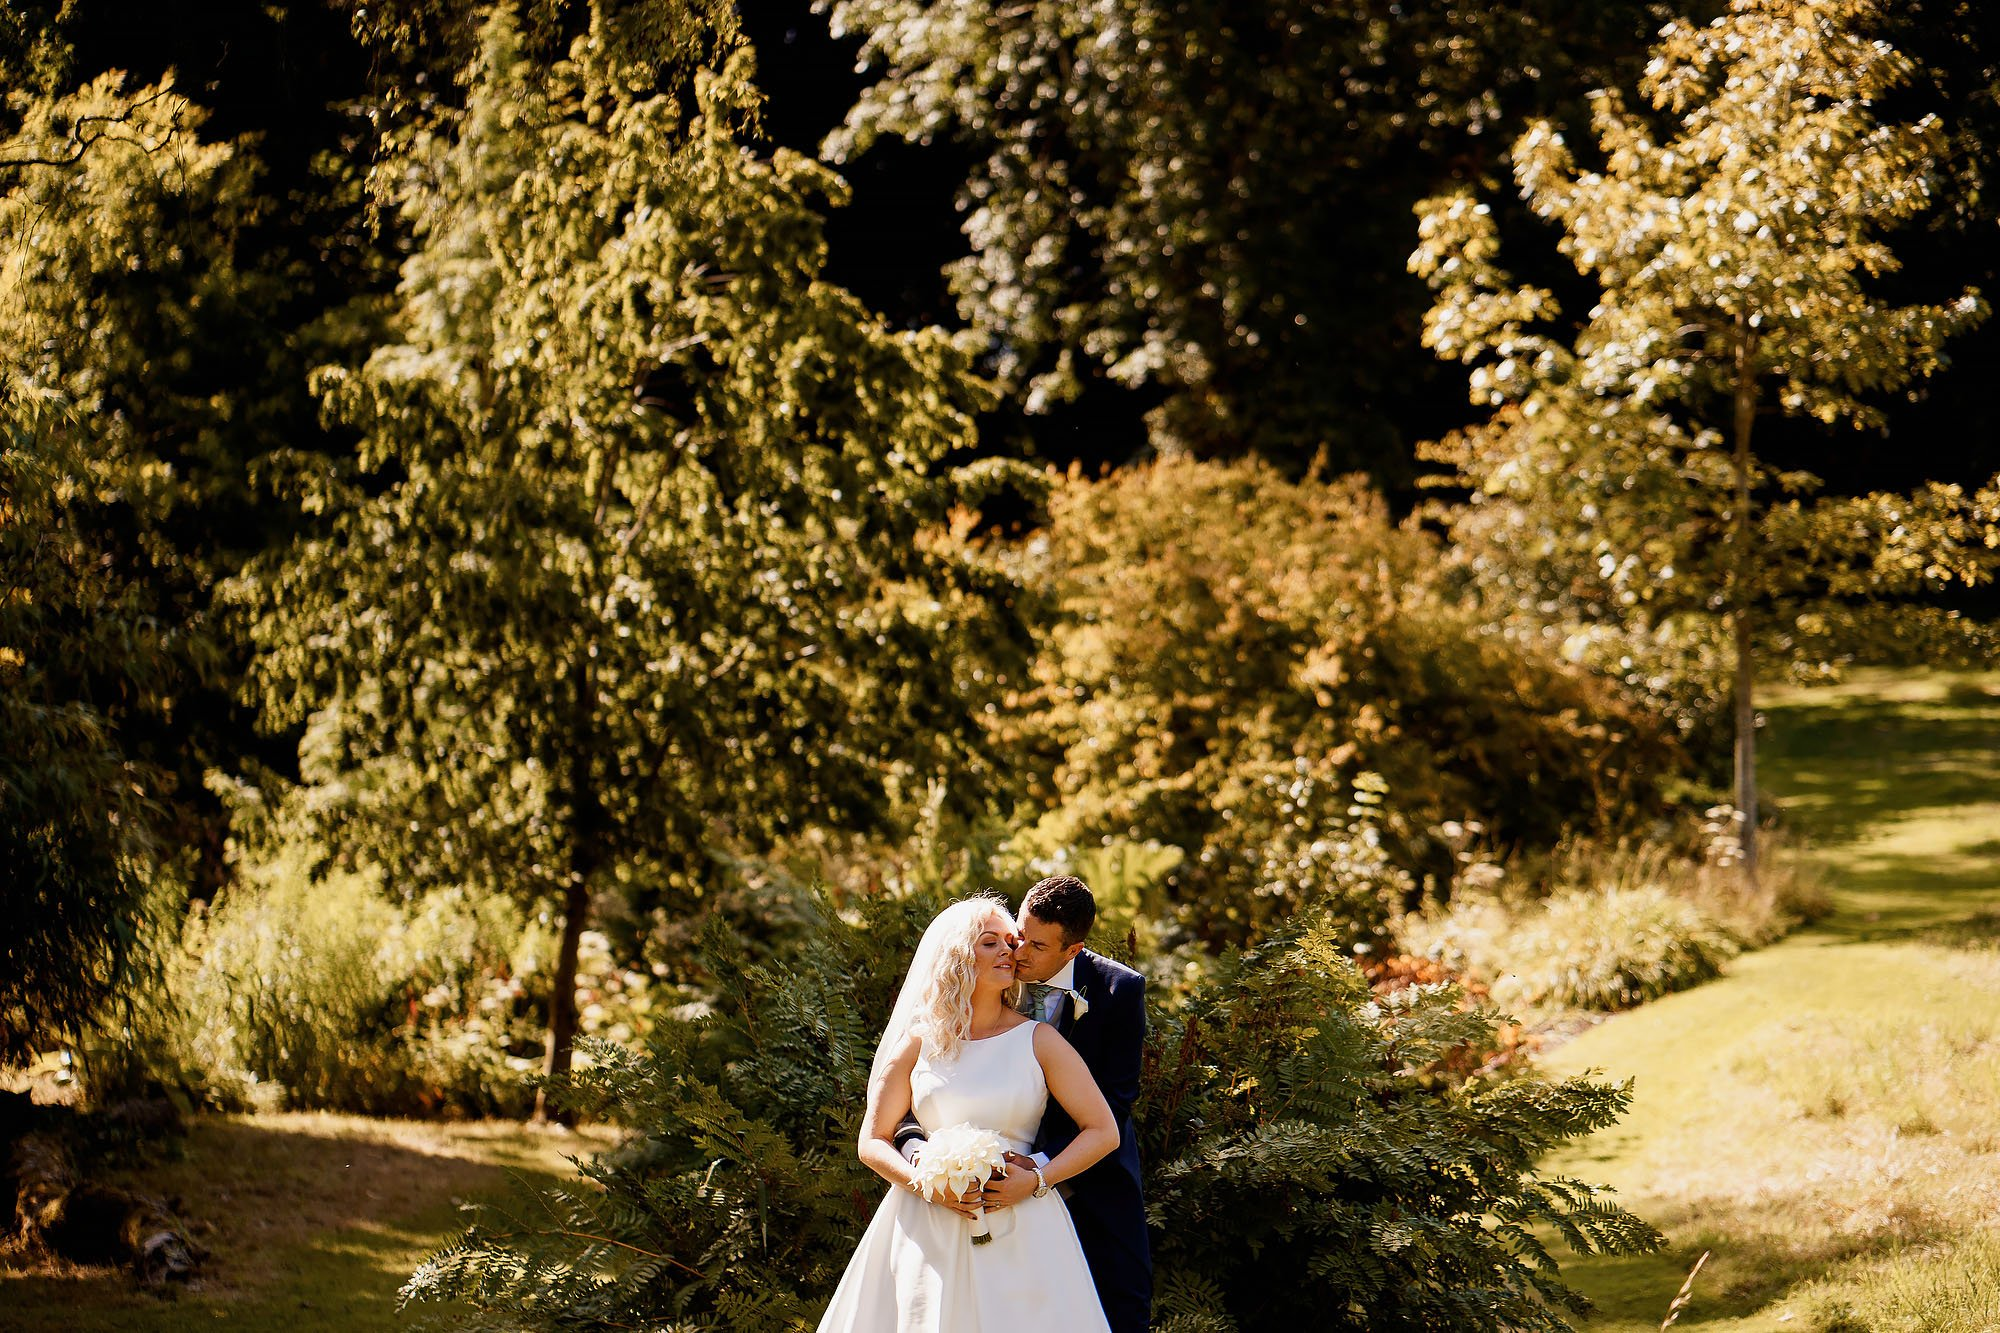 Lord of the Manor weddings Cotswolds - ARJ Photography®